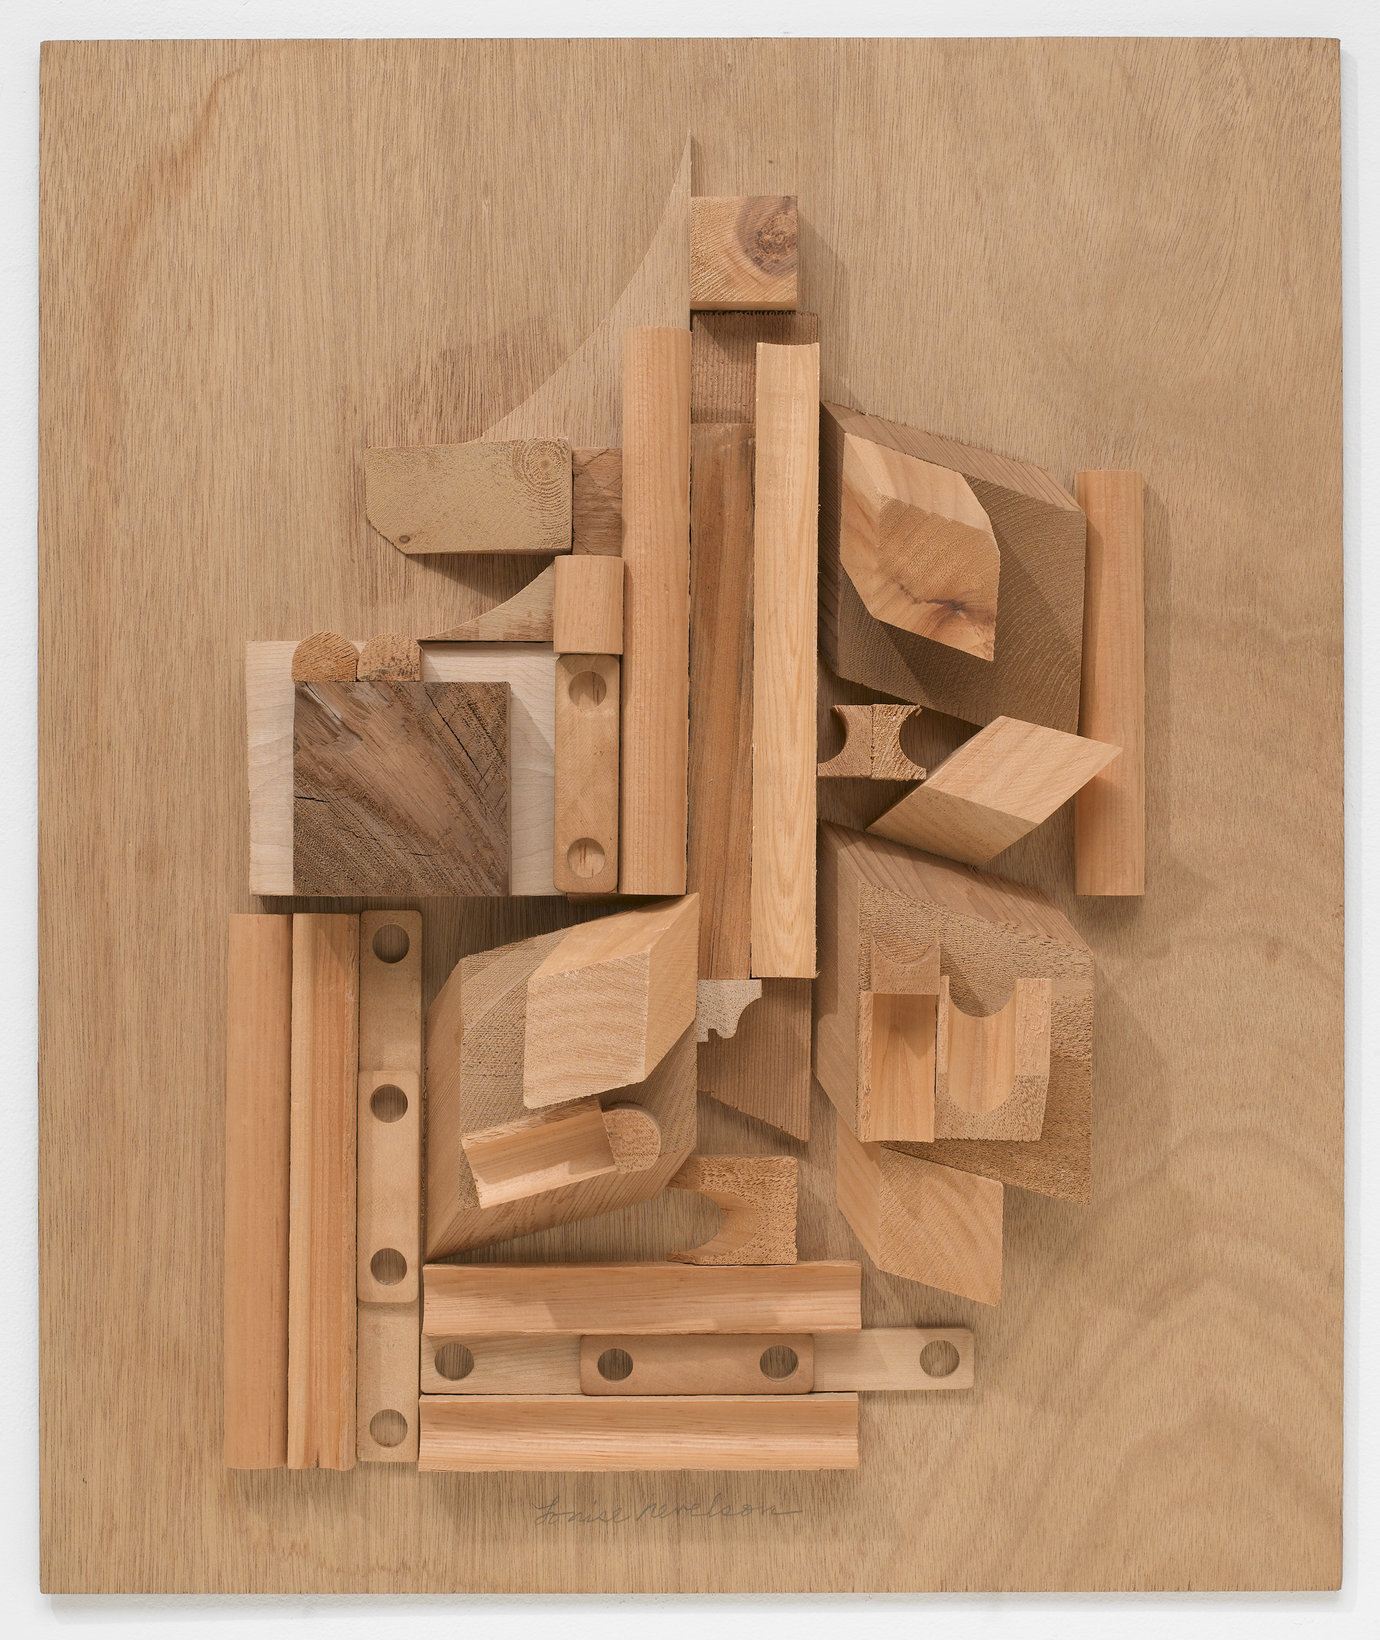 ", 1979. Wood collage, 23-7/8 x 20"" (60.6 x 50.8 cm)."